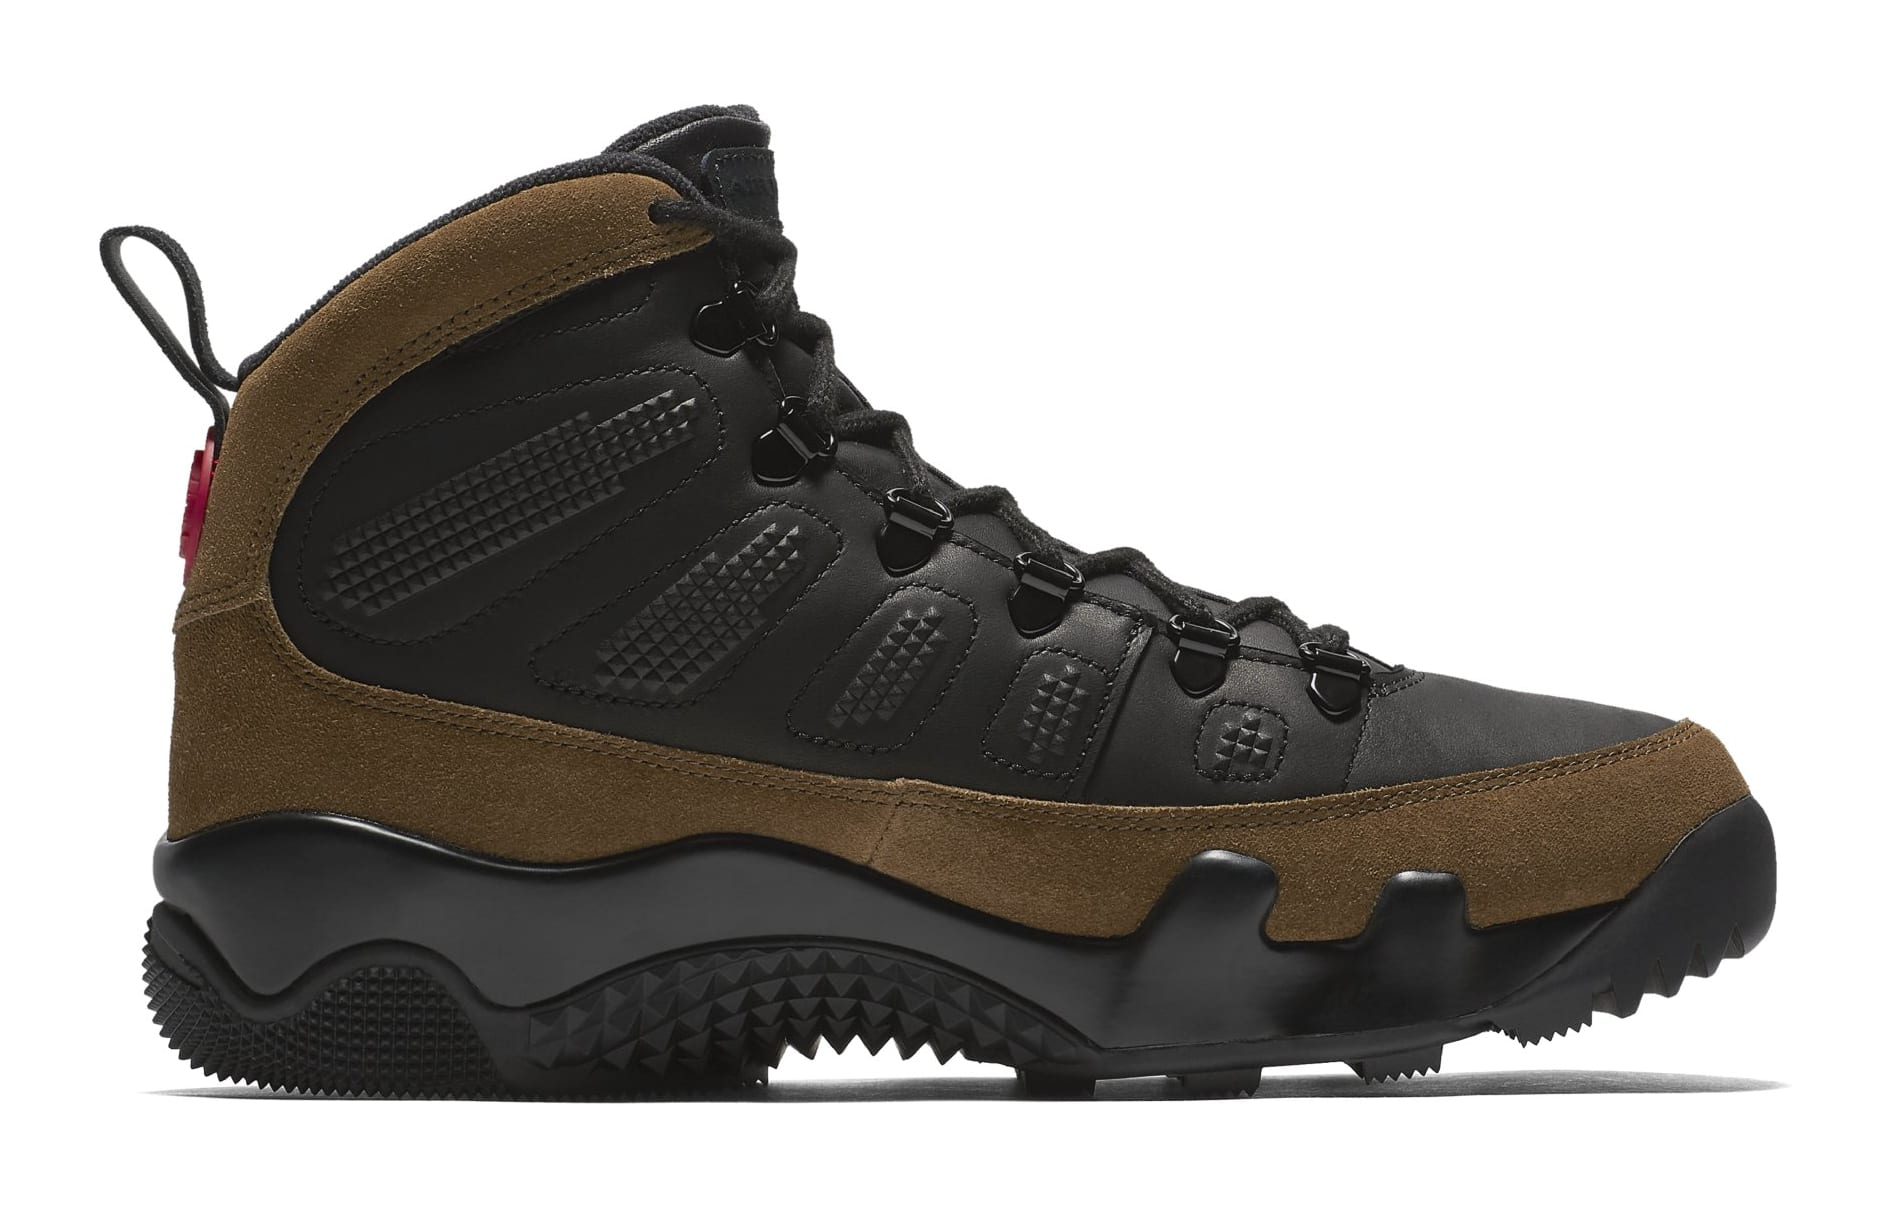 Air Jordan 9 NRG Boot 'Olive' AR4491-012 (Medial)